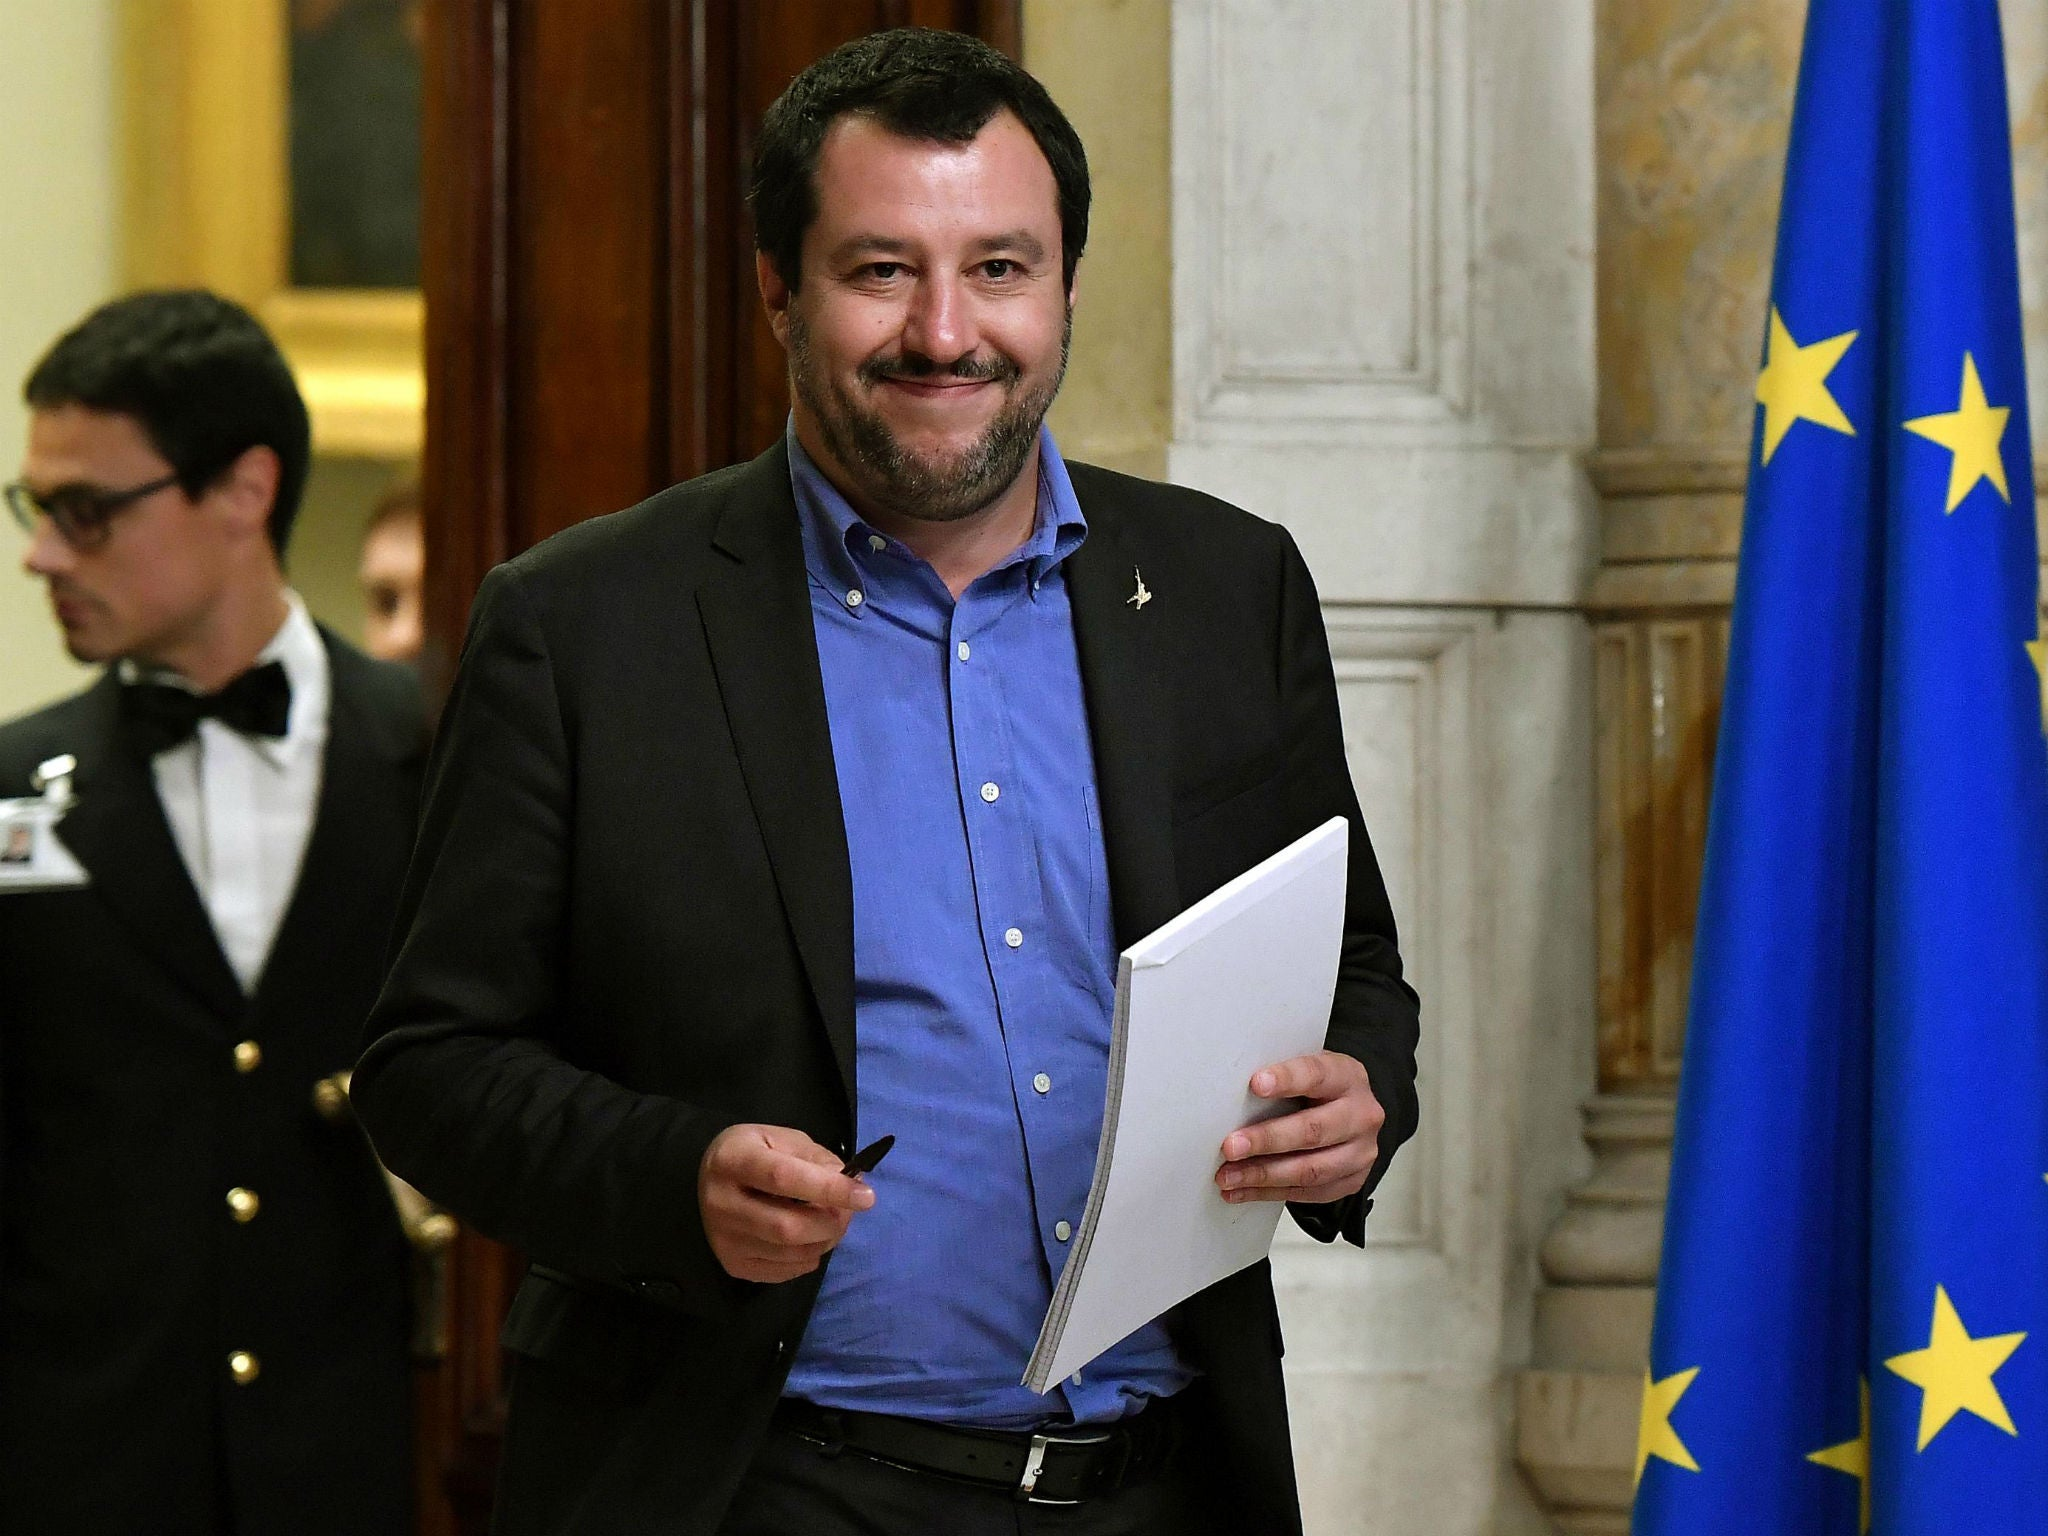 Matteo Salvini's populist League party in prime position to take advantage of new Italian elections